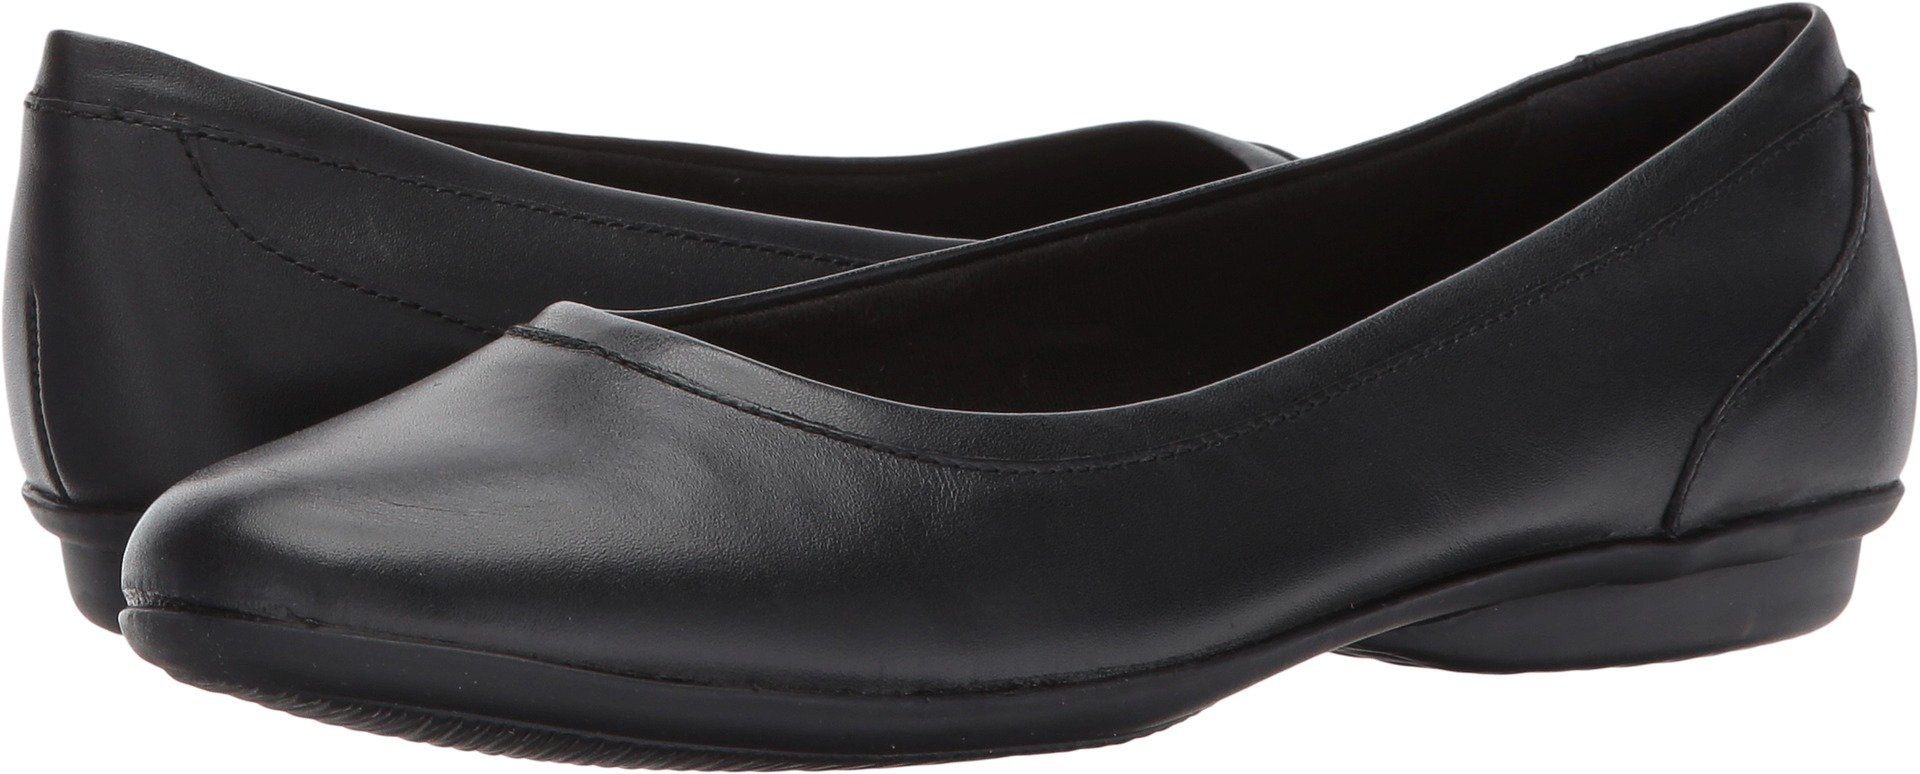 CLARKS Women's Gracelin Mara Flat,Black Smooth,9.5 M US